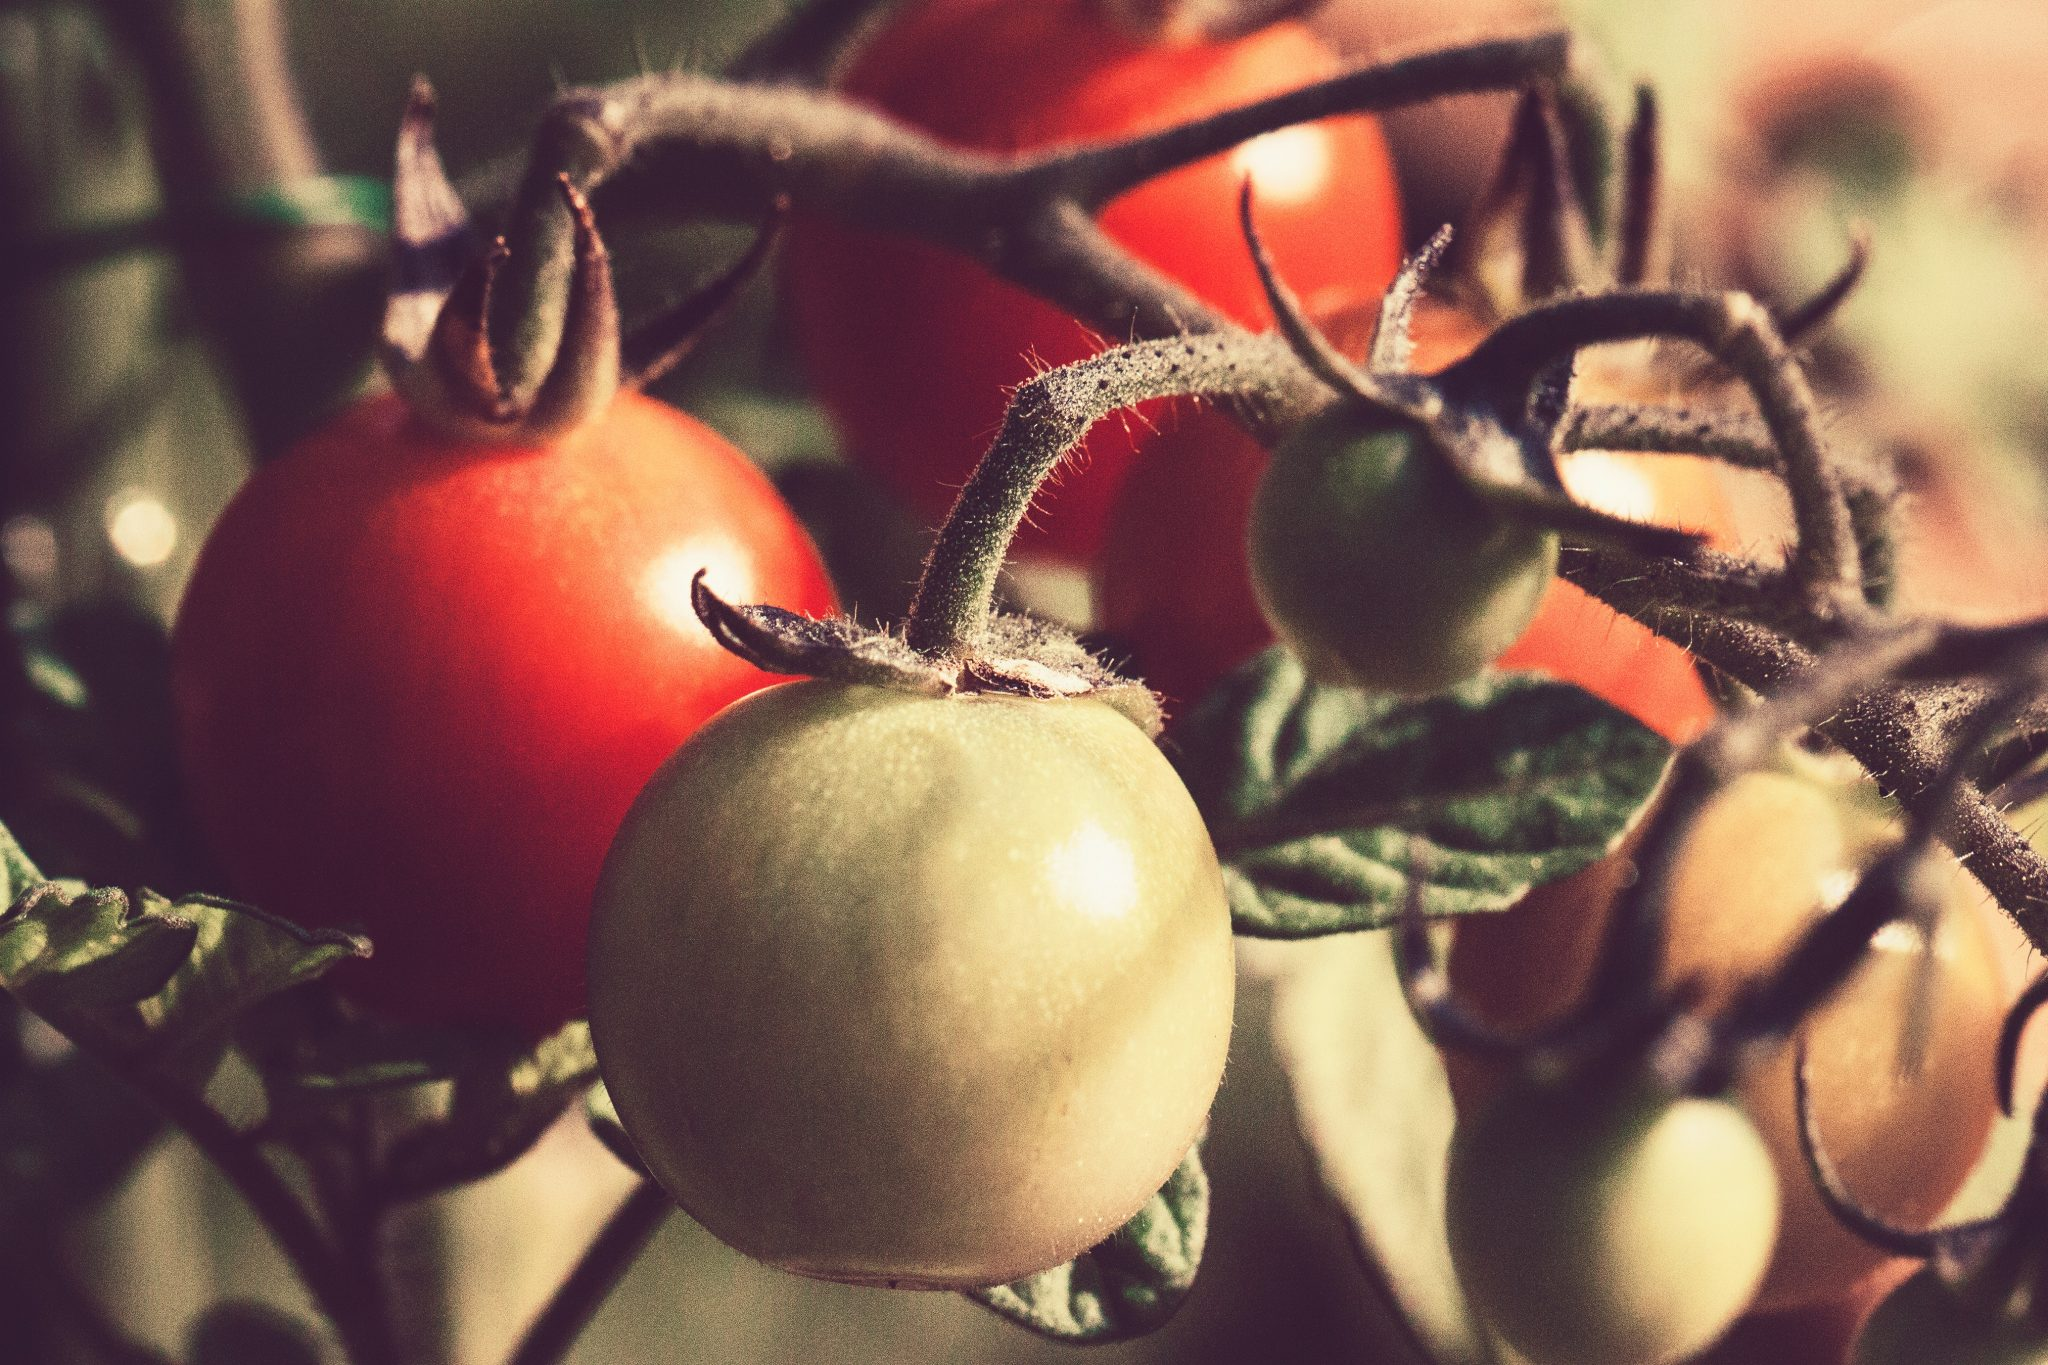 Delicious Tomatoes on the Vine